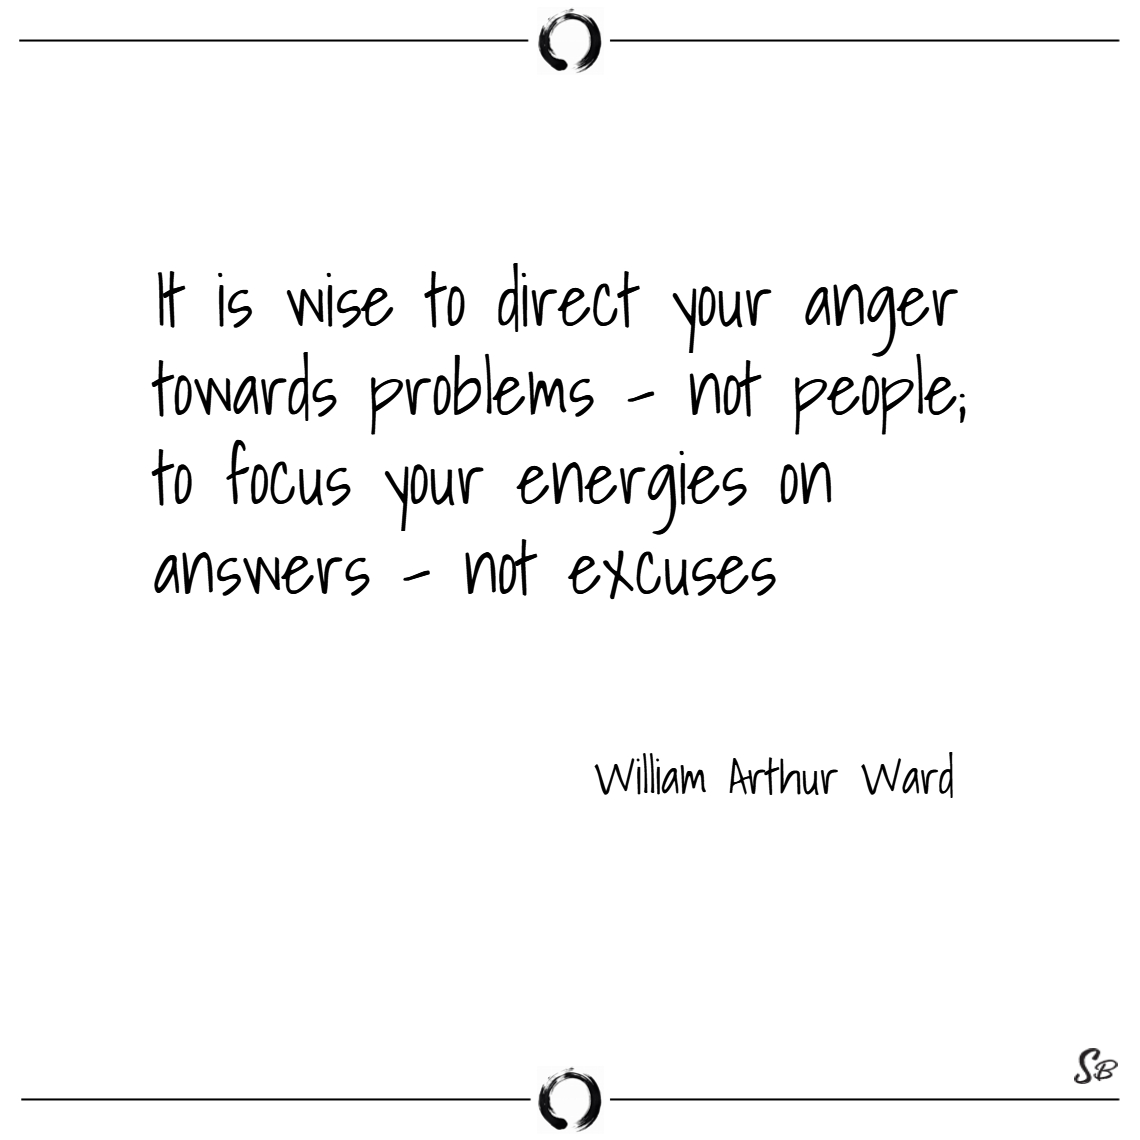 It is wise to direct your anger towards problems